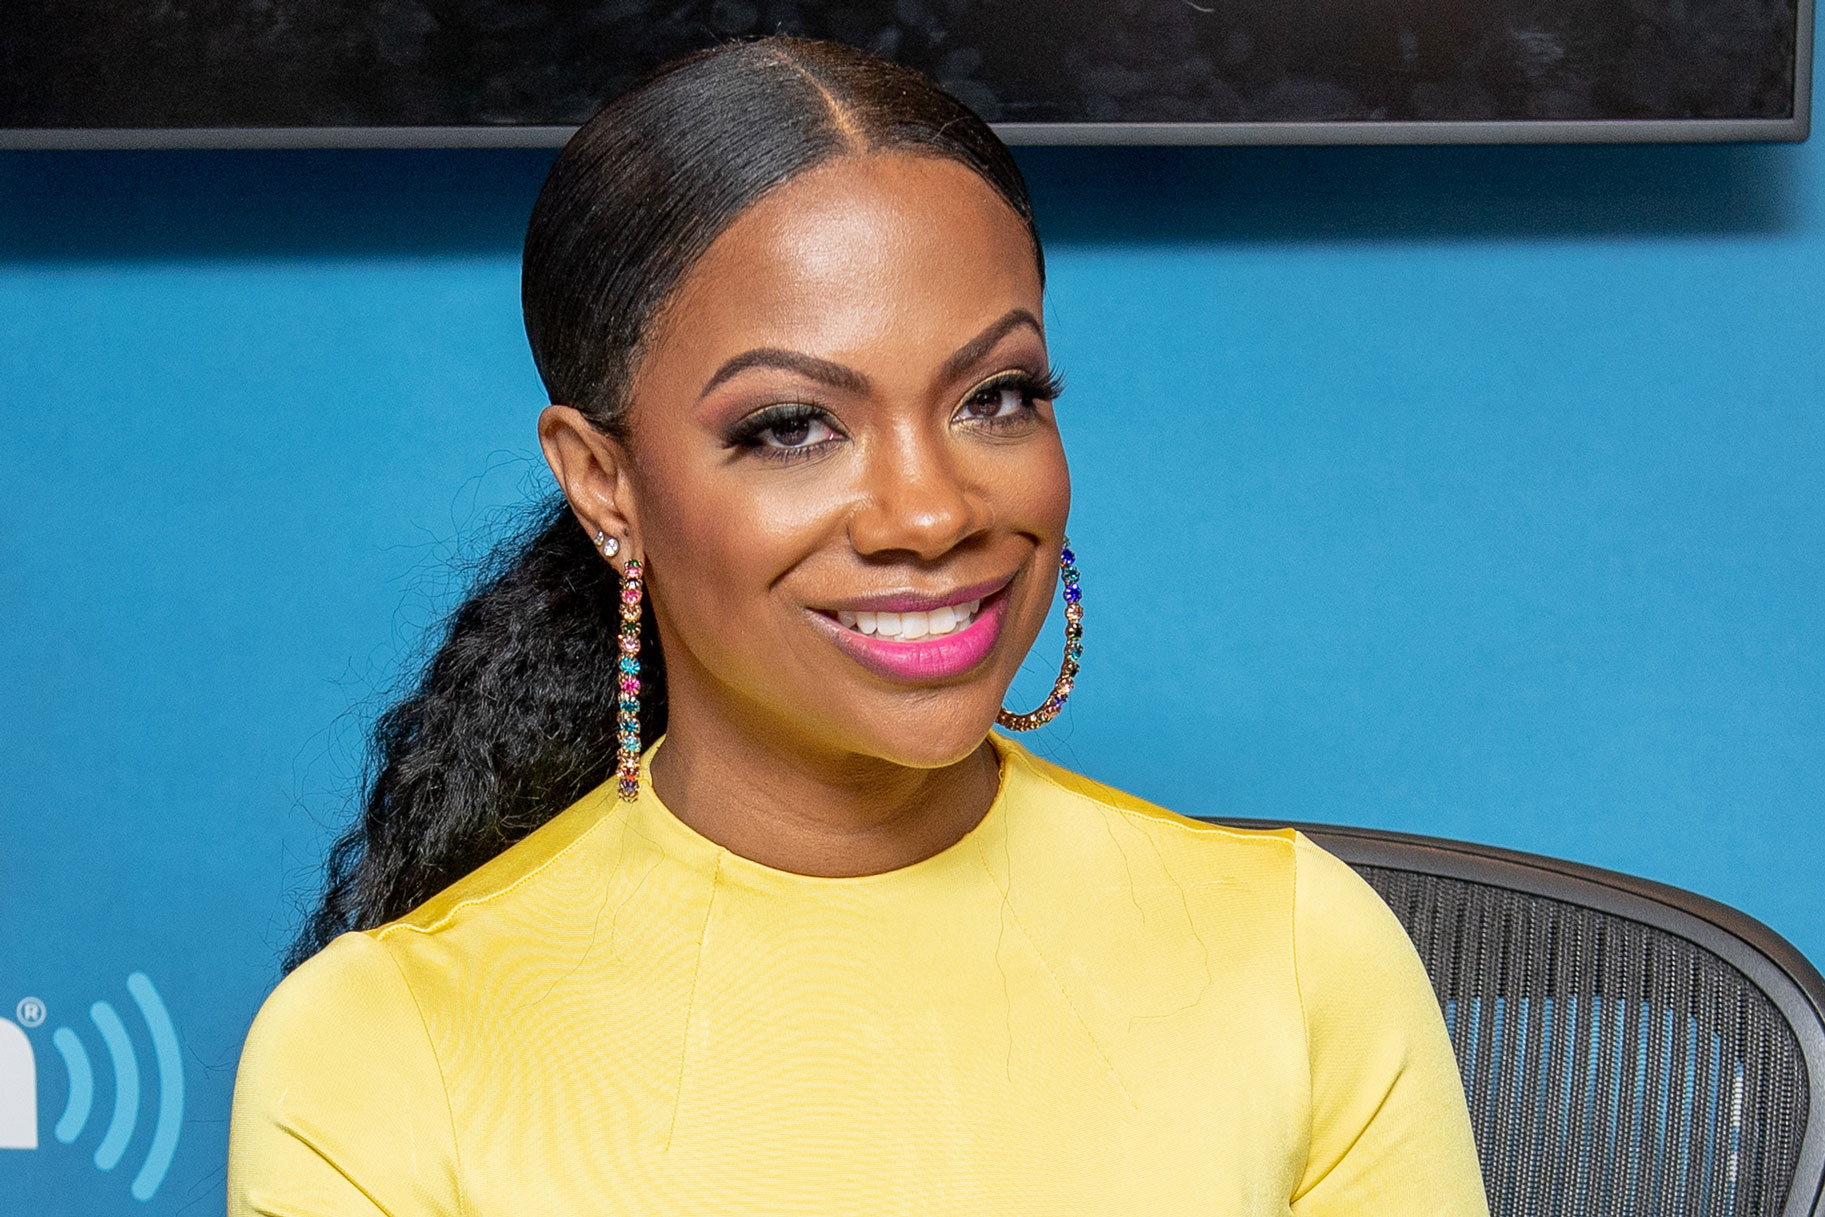 Kandi Burruss Shares A Gorgeous Family Photo From Her NYE